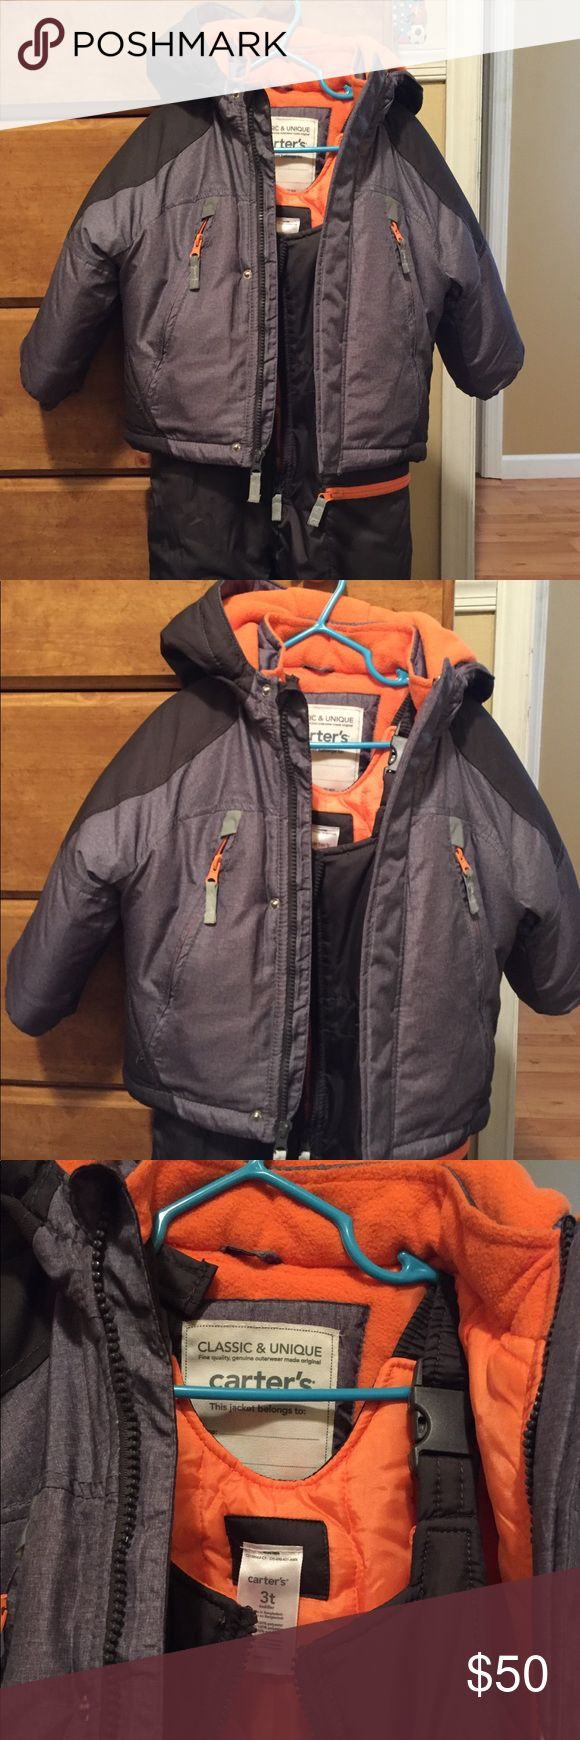 Carter's snow bib and coat 2 piece set 3T Very nice like new! Carter's 3T snow bibs and coat set. Very warm and in perfect condition. Feel free to ask any questions or make me an offer! Carter's Jackets & Coats